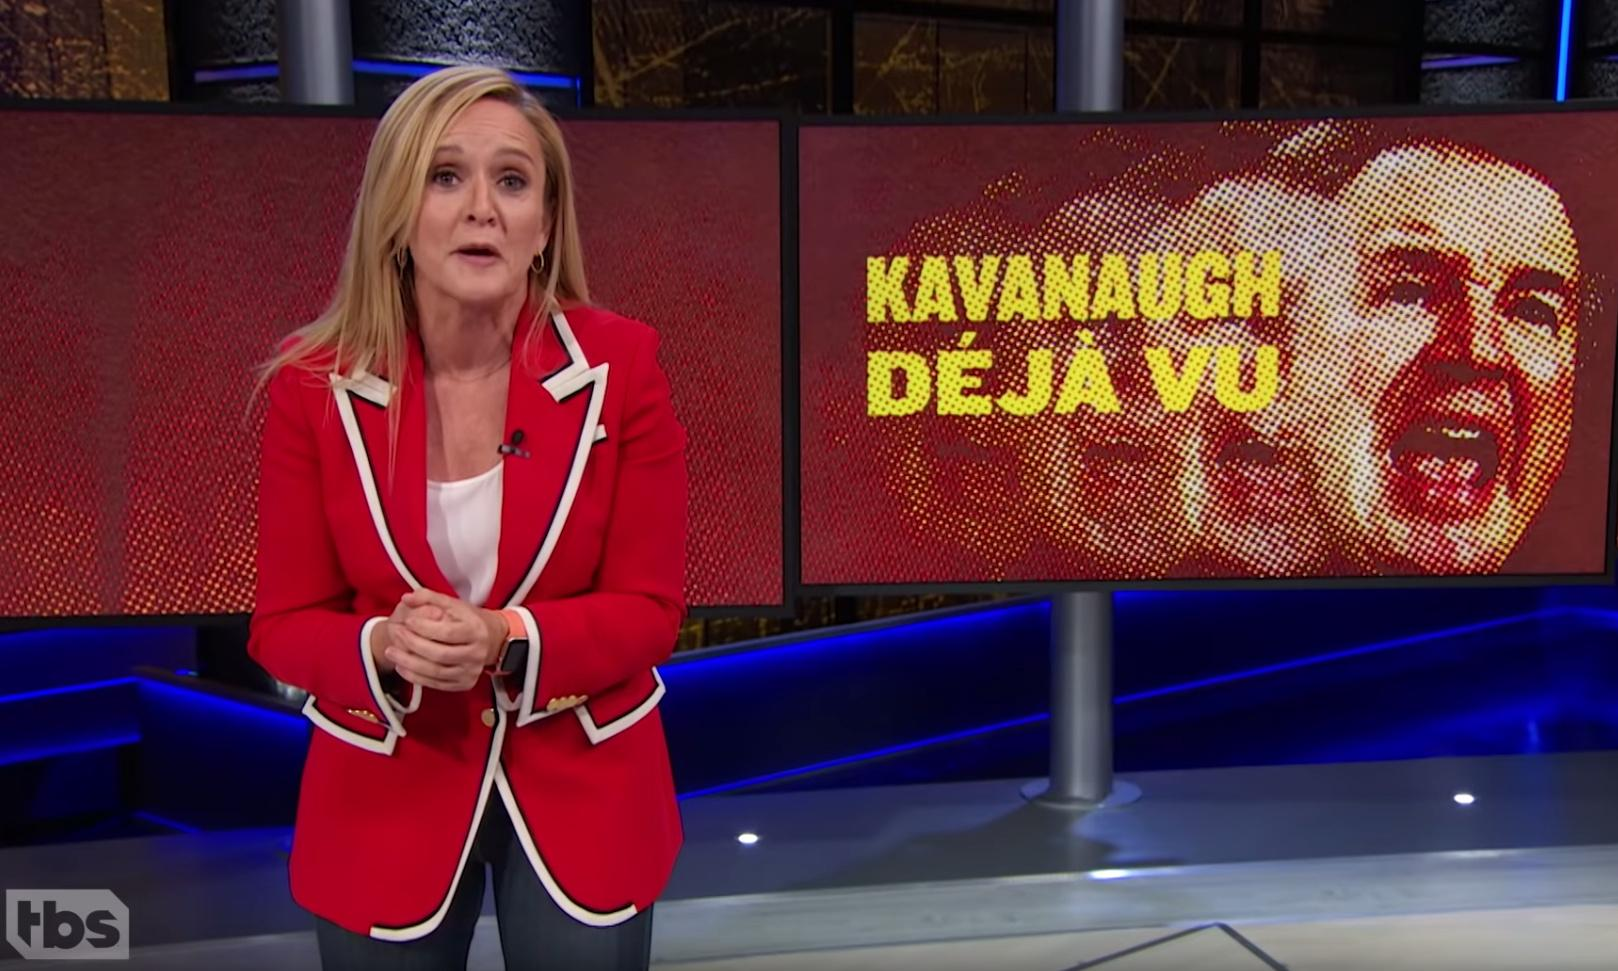 Samantha Bee: Senate decided 'not to do a proper investigation' on Kavanaugh